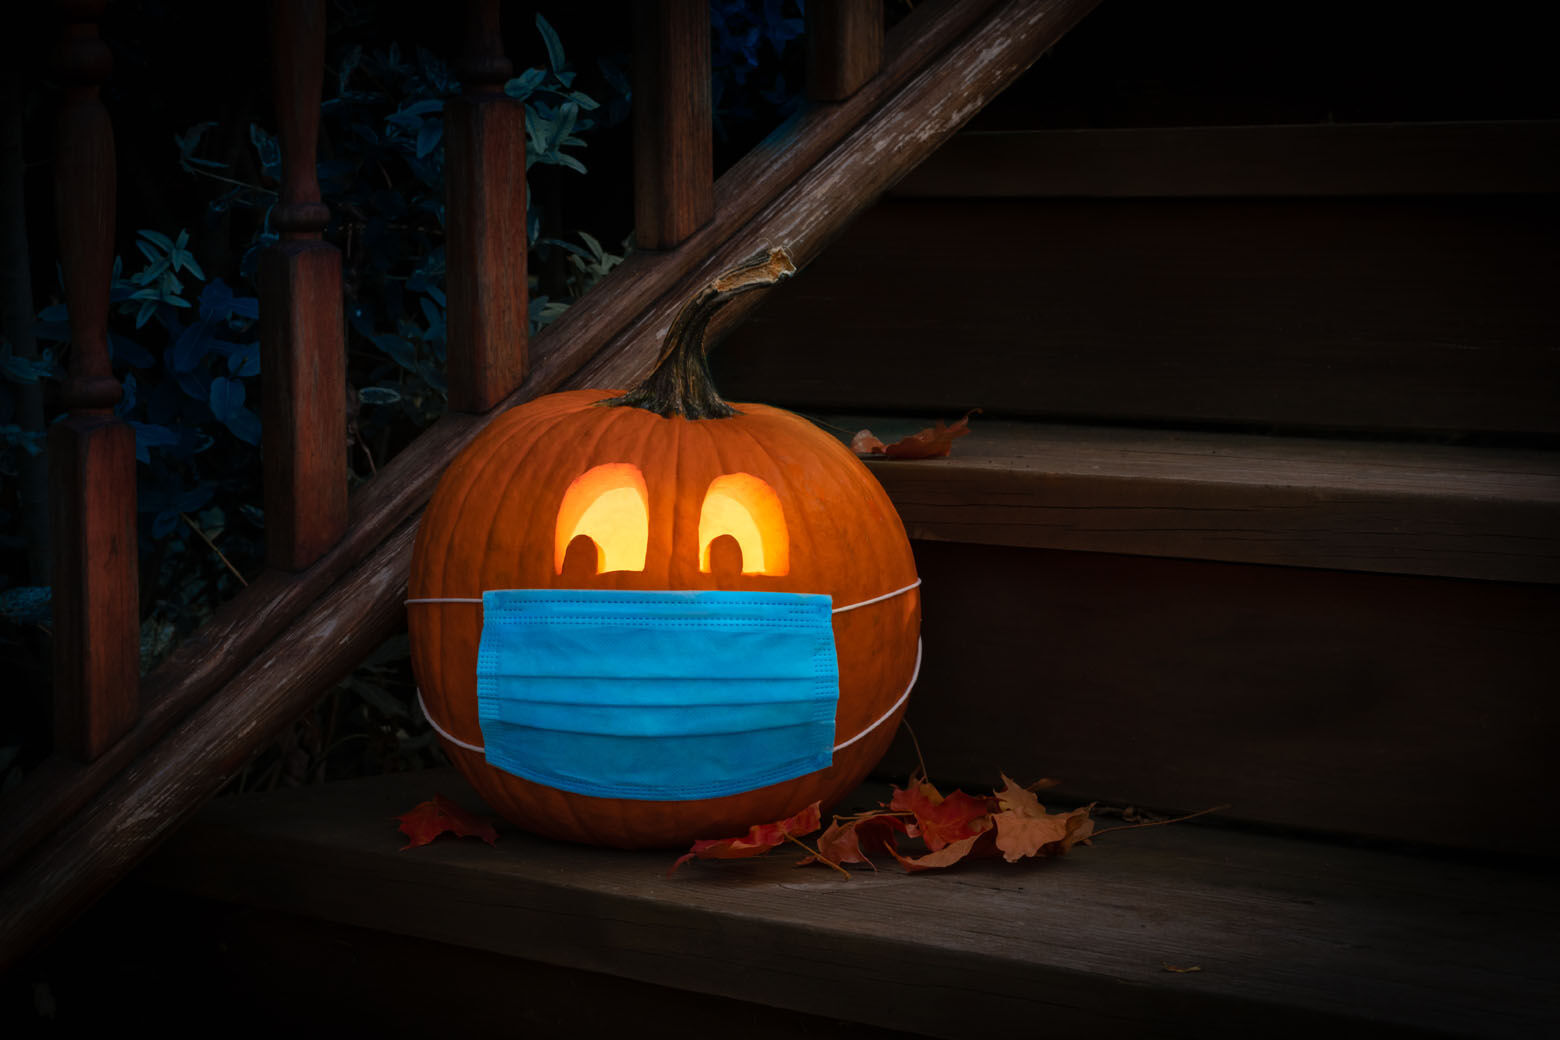 Halloween Trick Or Treat Laws 2020 Anne Arundel County Prince George's Co. advises against traditional trick or treating